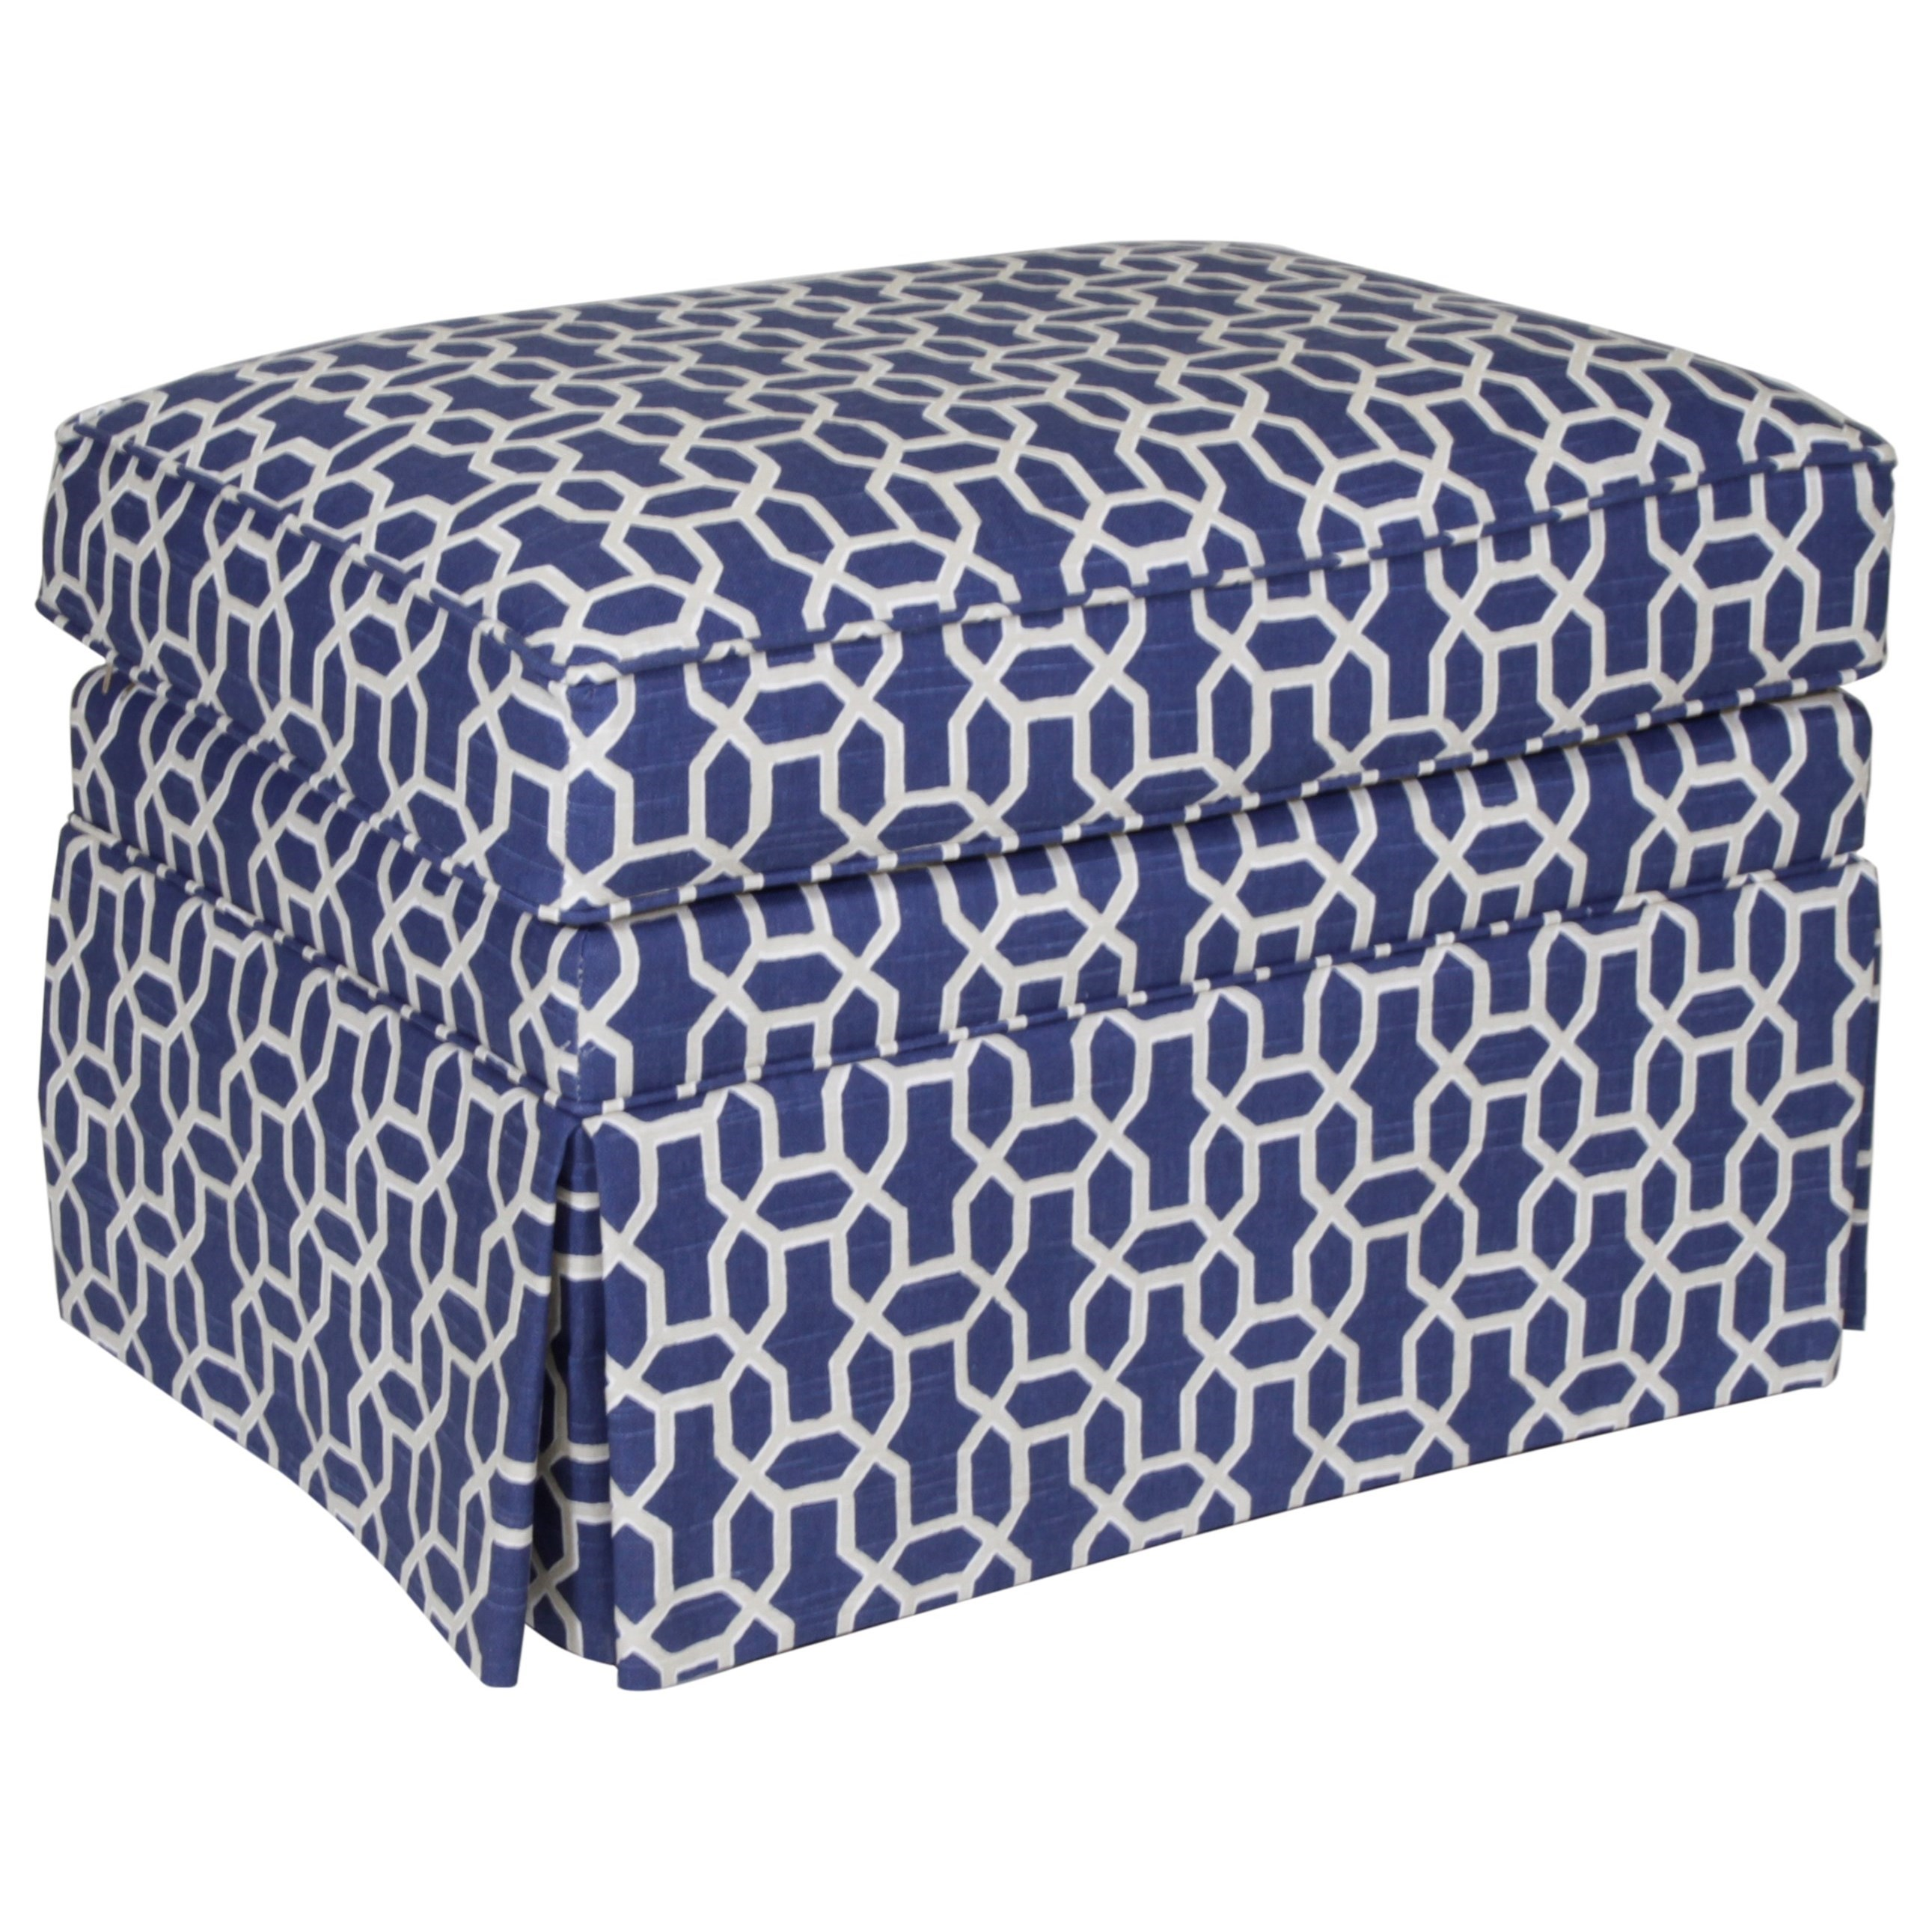 Studio Essentials Upholstery Dover Ottoman by Century at Baer's Furniture